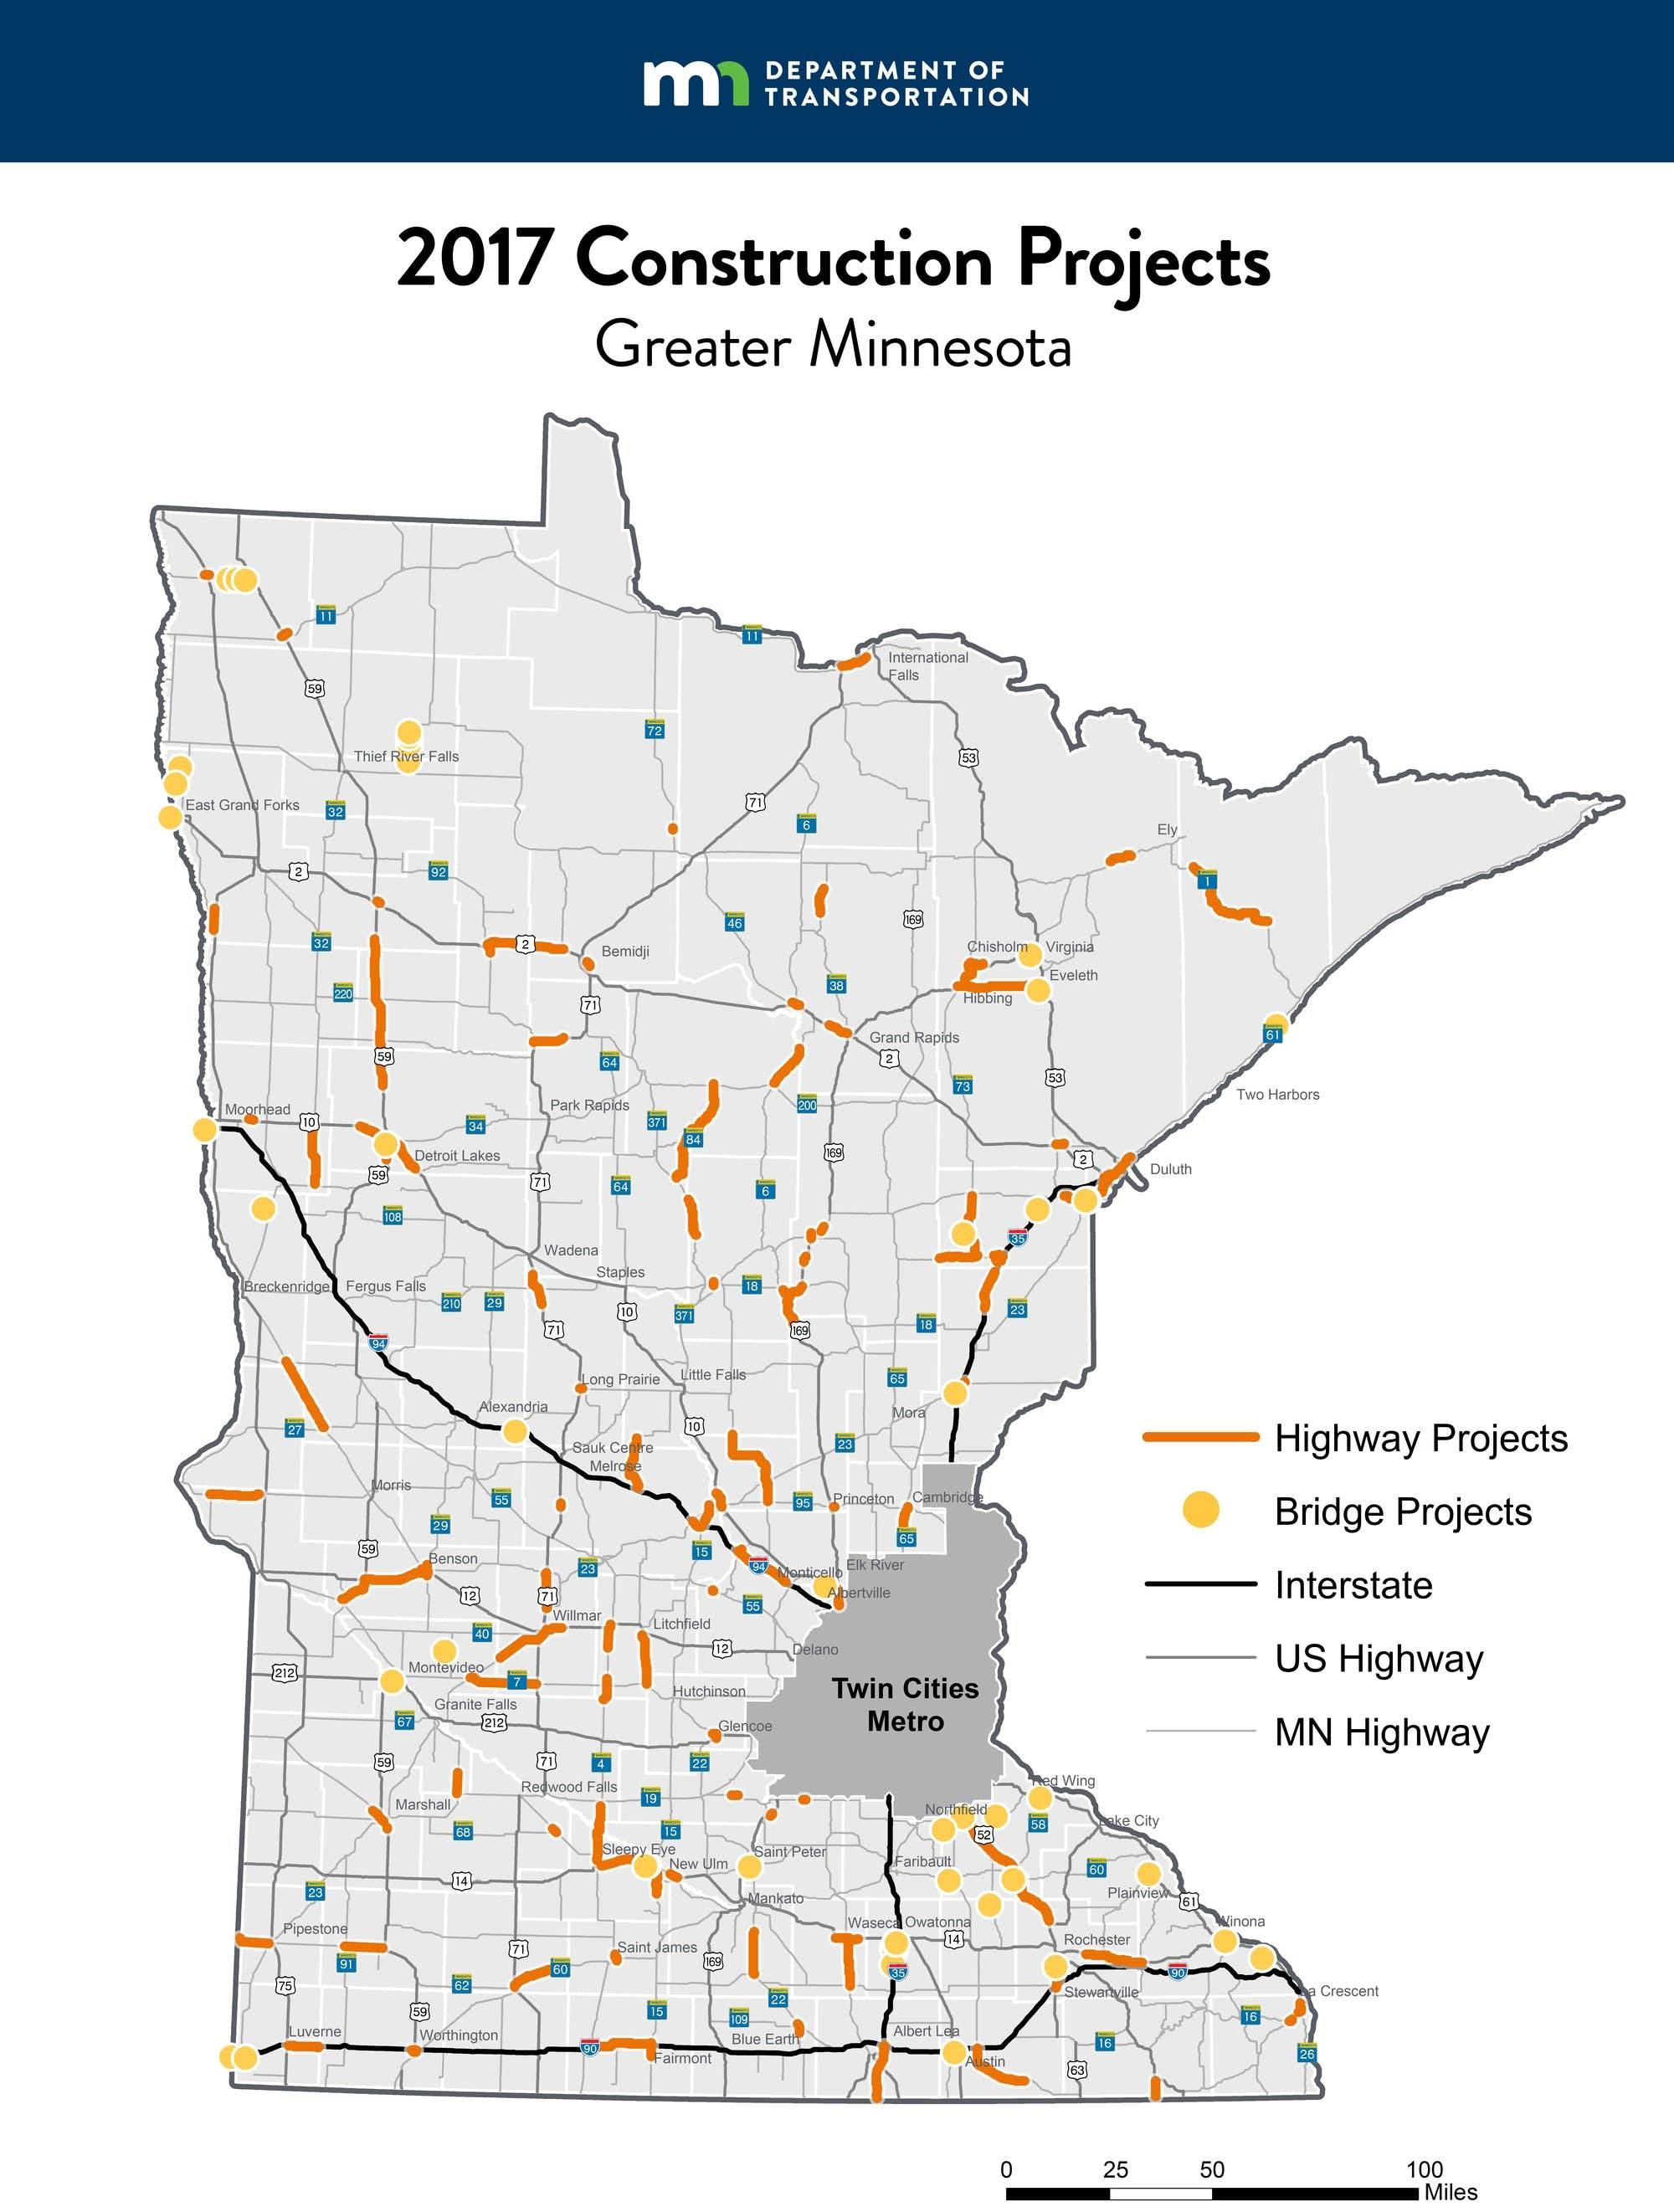 A map of construction projects around greater Minnesota